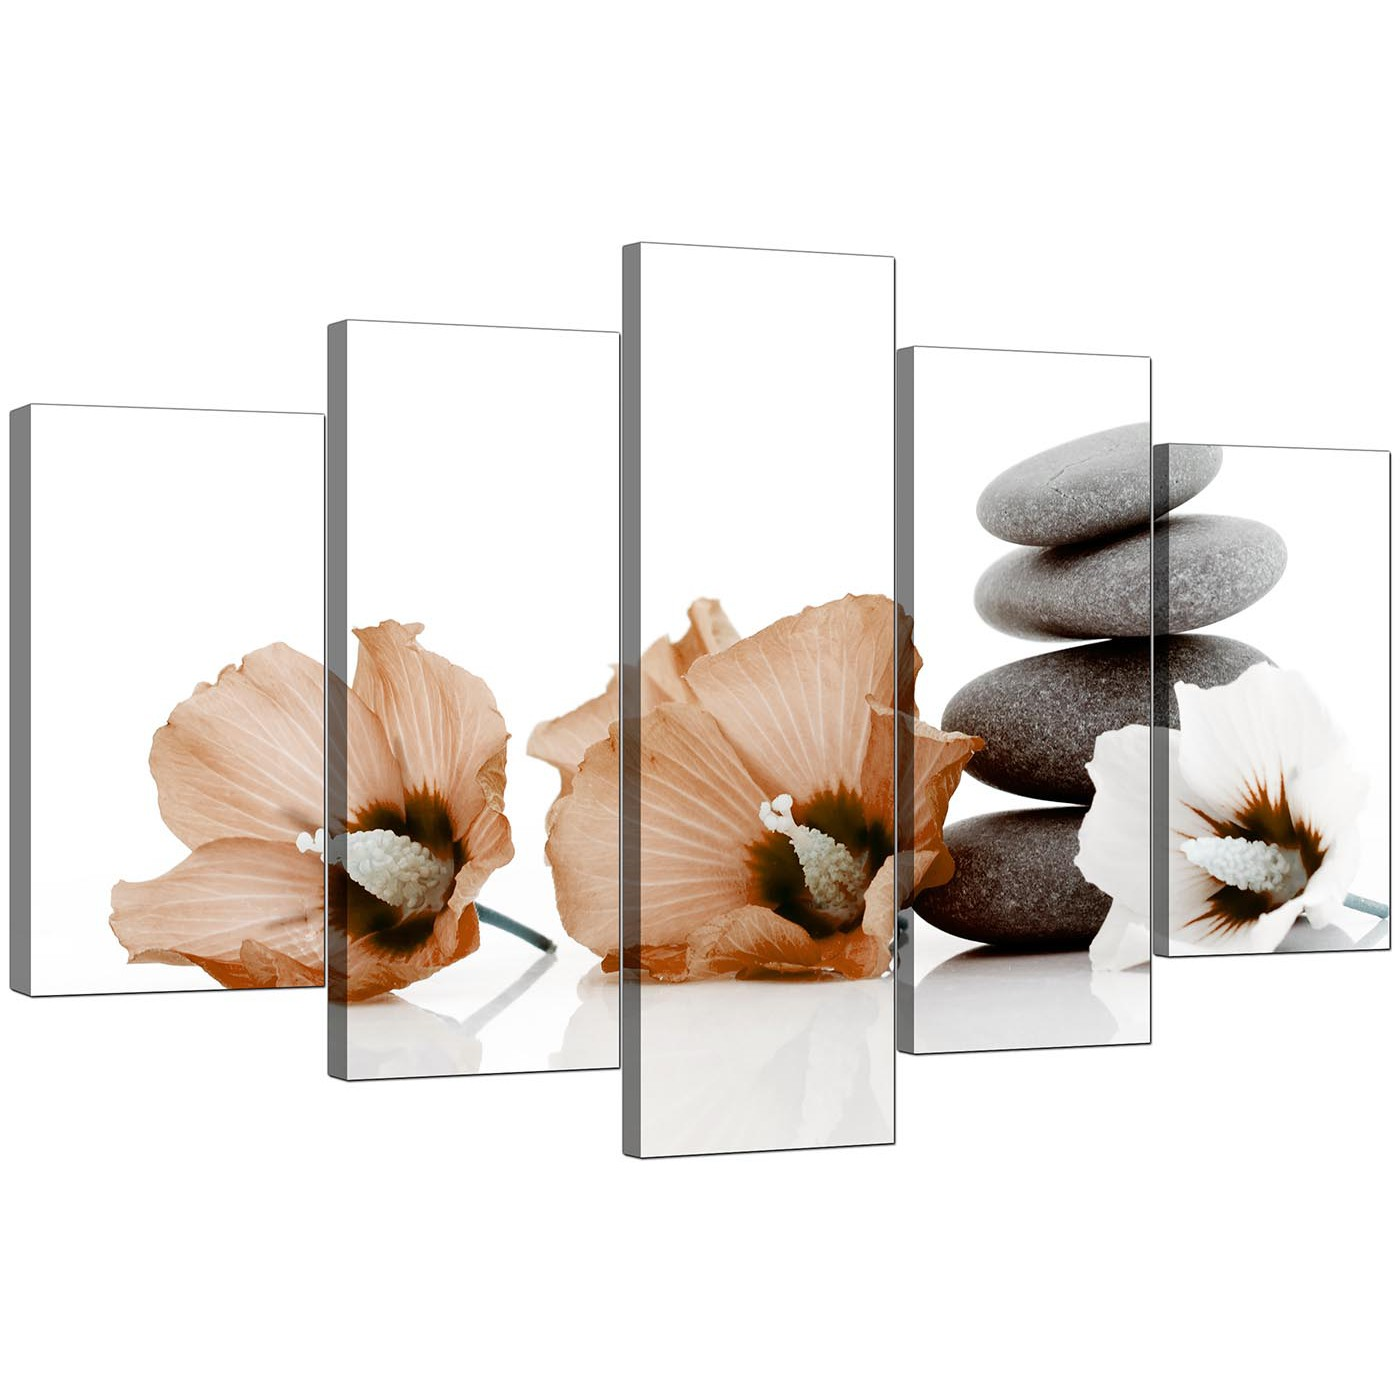 Large flowers canvas prints uk 5 piece in brown display gallery item 4 5 piece set of extra large brown canvas picture display gallery item 5 izmirmasajfo Image collections